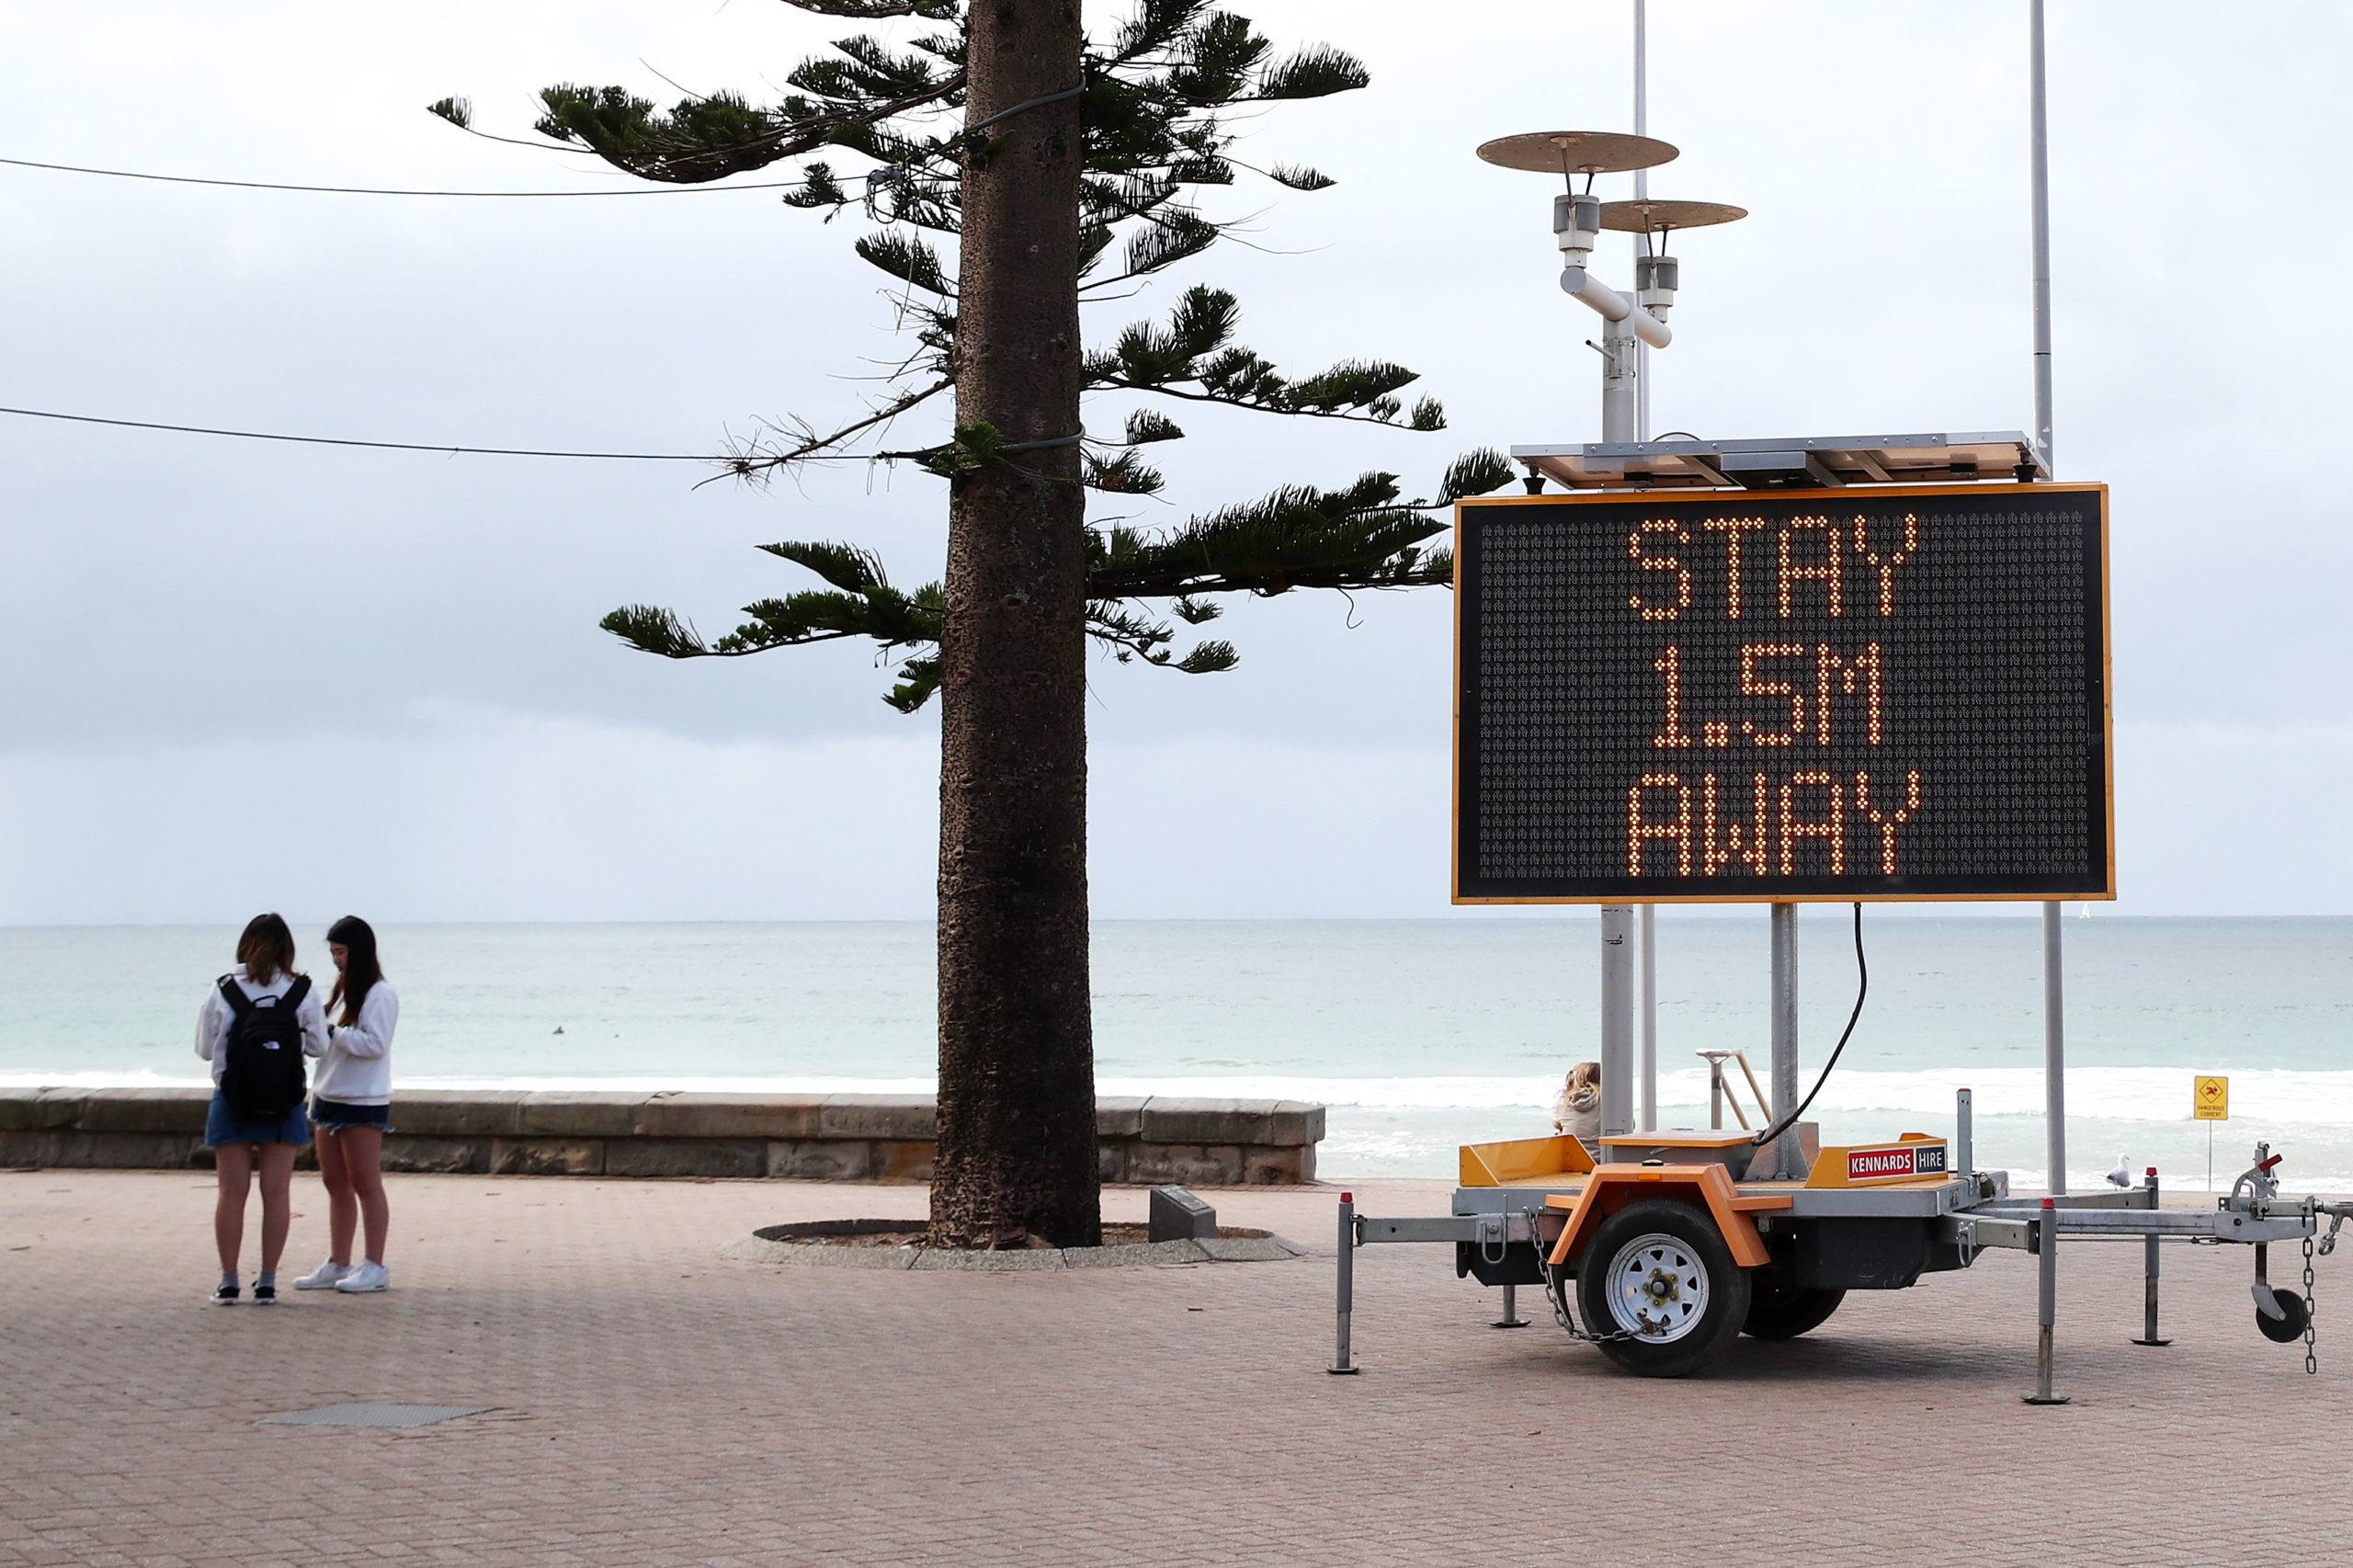 A sign in Australia urges citizens to stay 1.5 meters, or about 5 feet, apart in 2020. (Cameron Spencer/Getty Images)